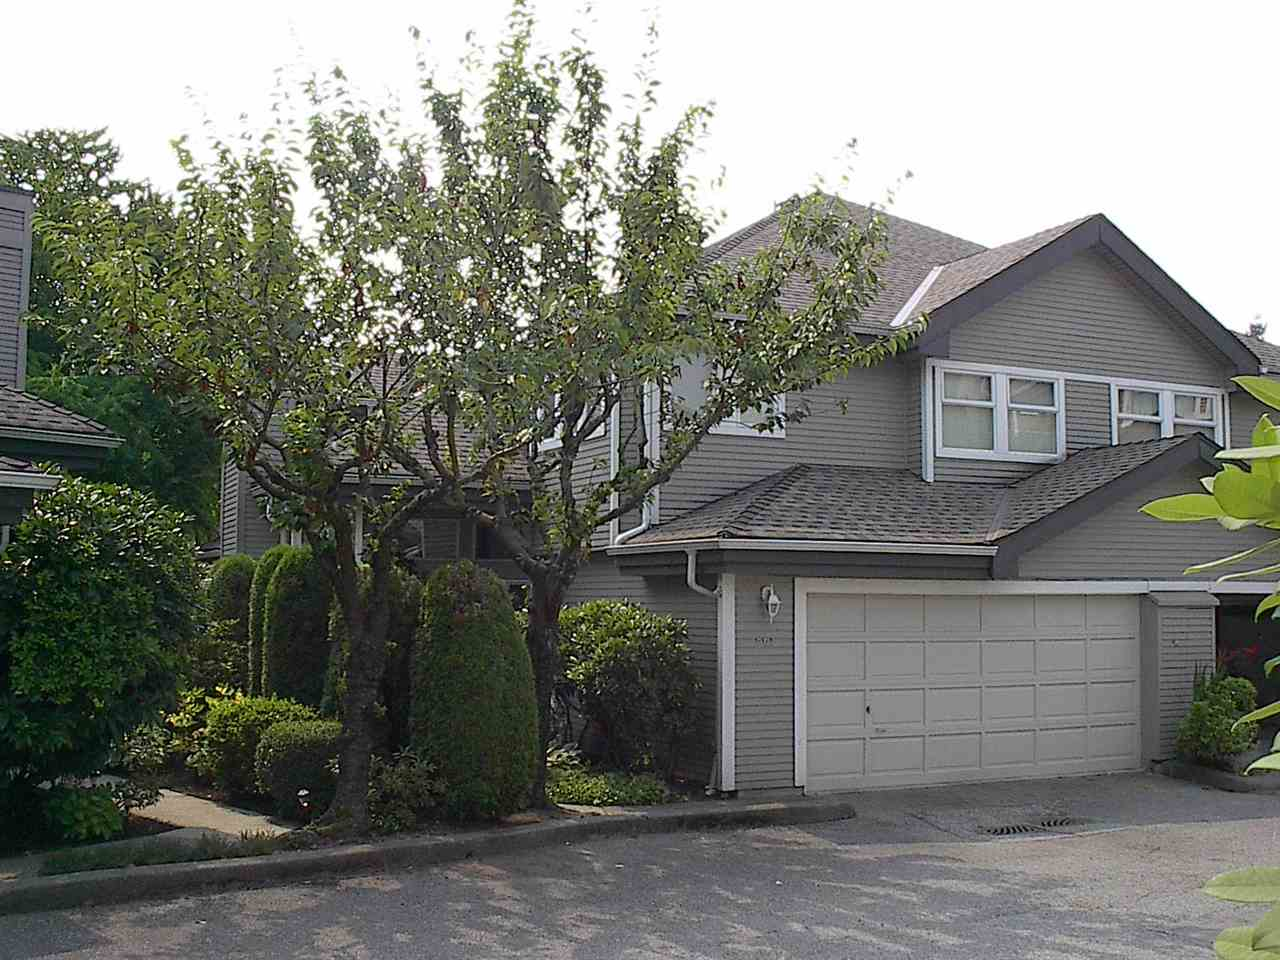 Main Photo: 861 ROCHE POINT DRIVE in North Vancouver: Roche Point Townhouse for sale : MLS® # R2194349